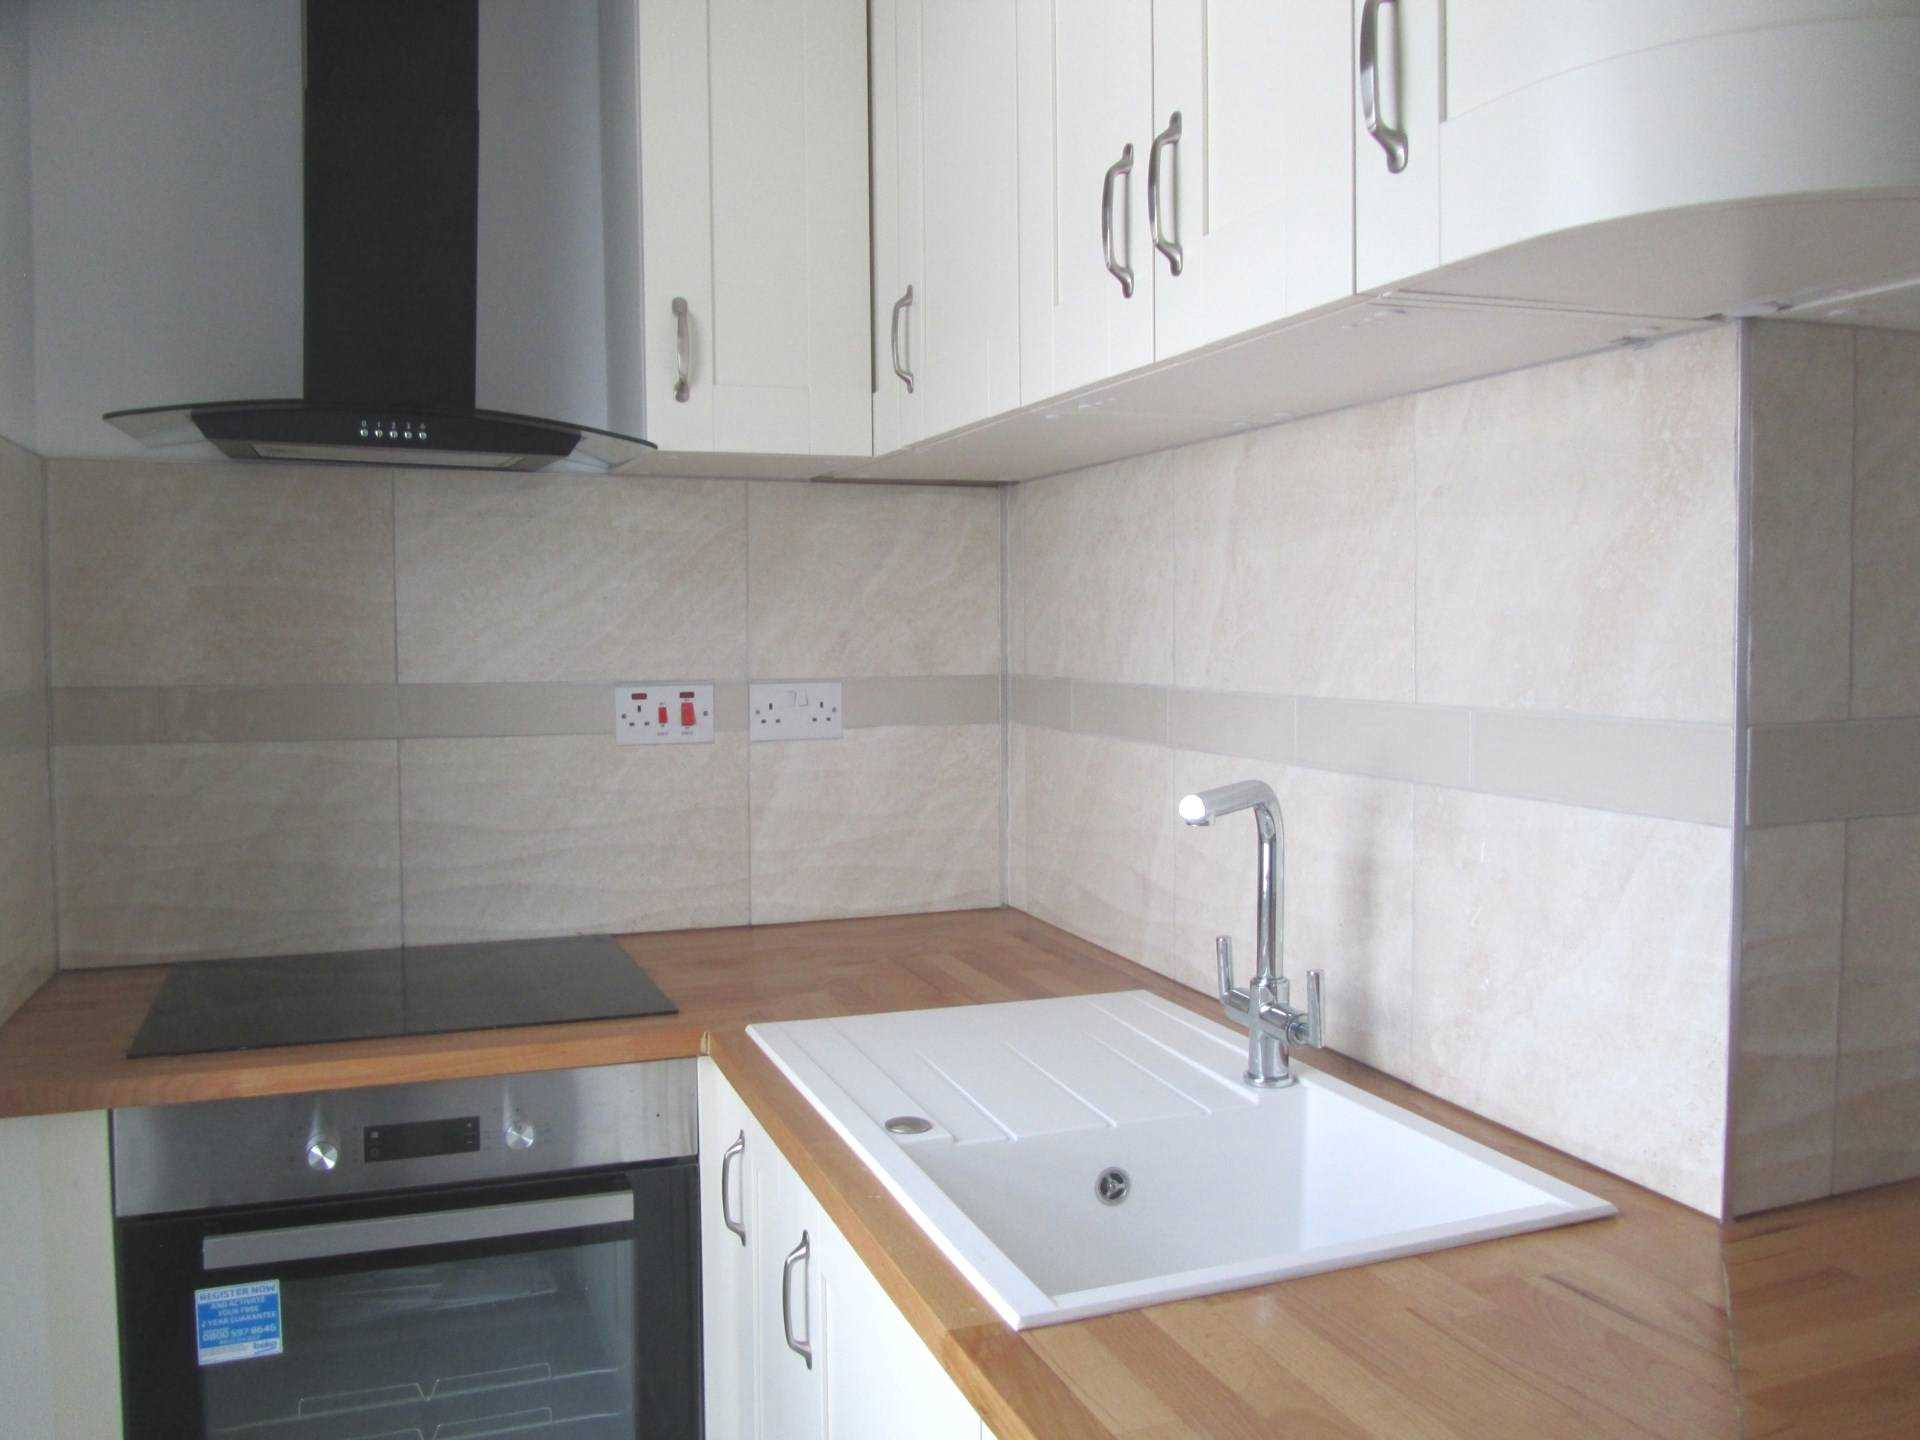 2 Bedroom Flat For Sale Susans Road Eastbourne Bn21 3tj